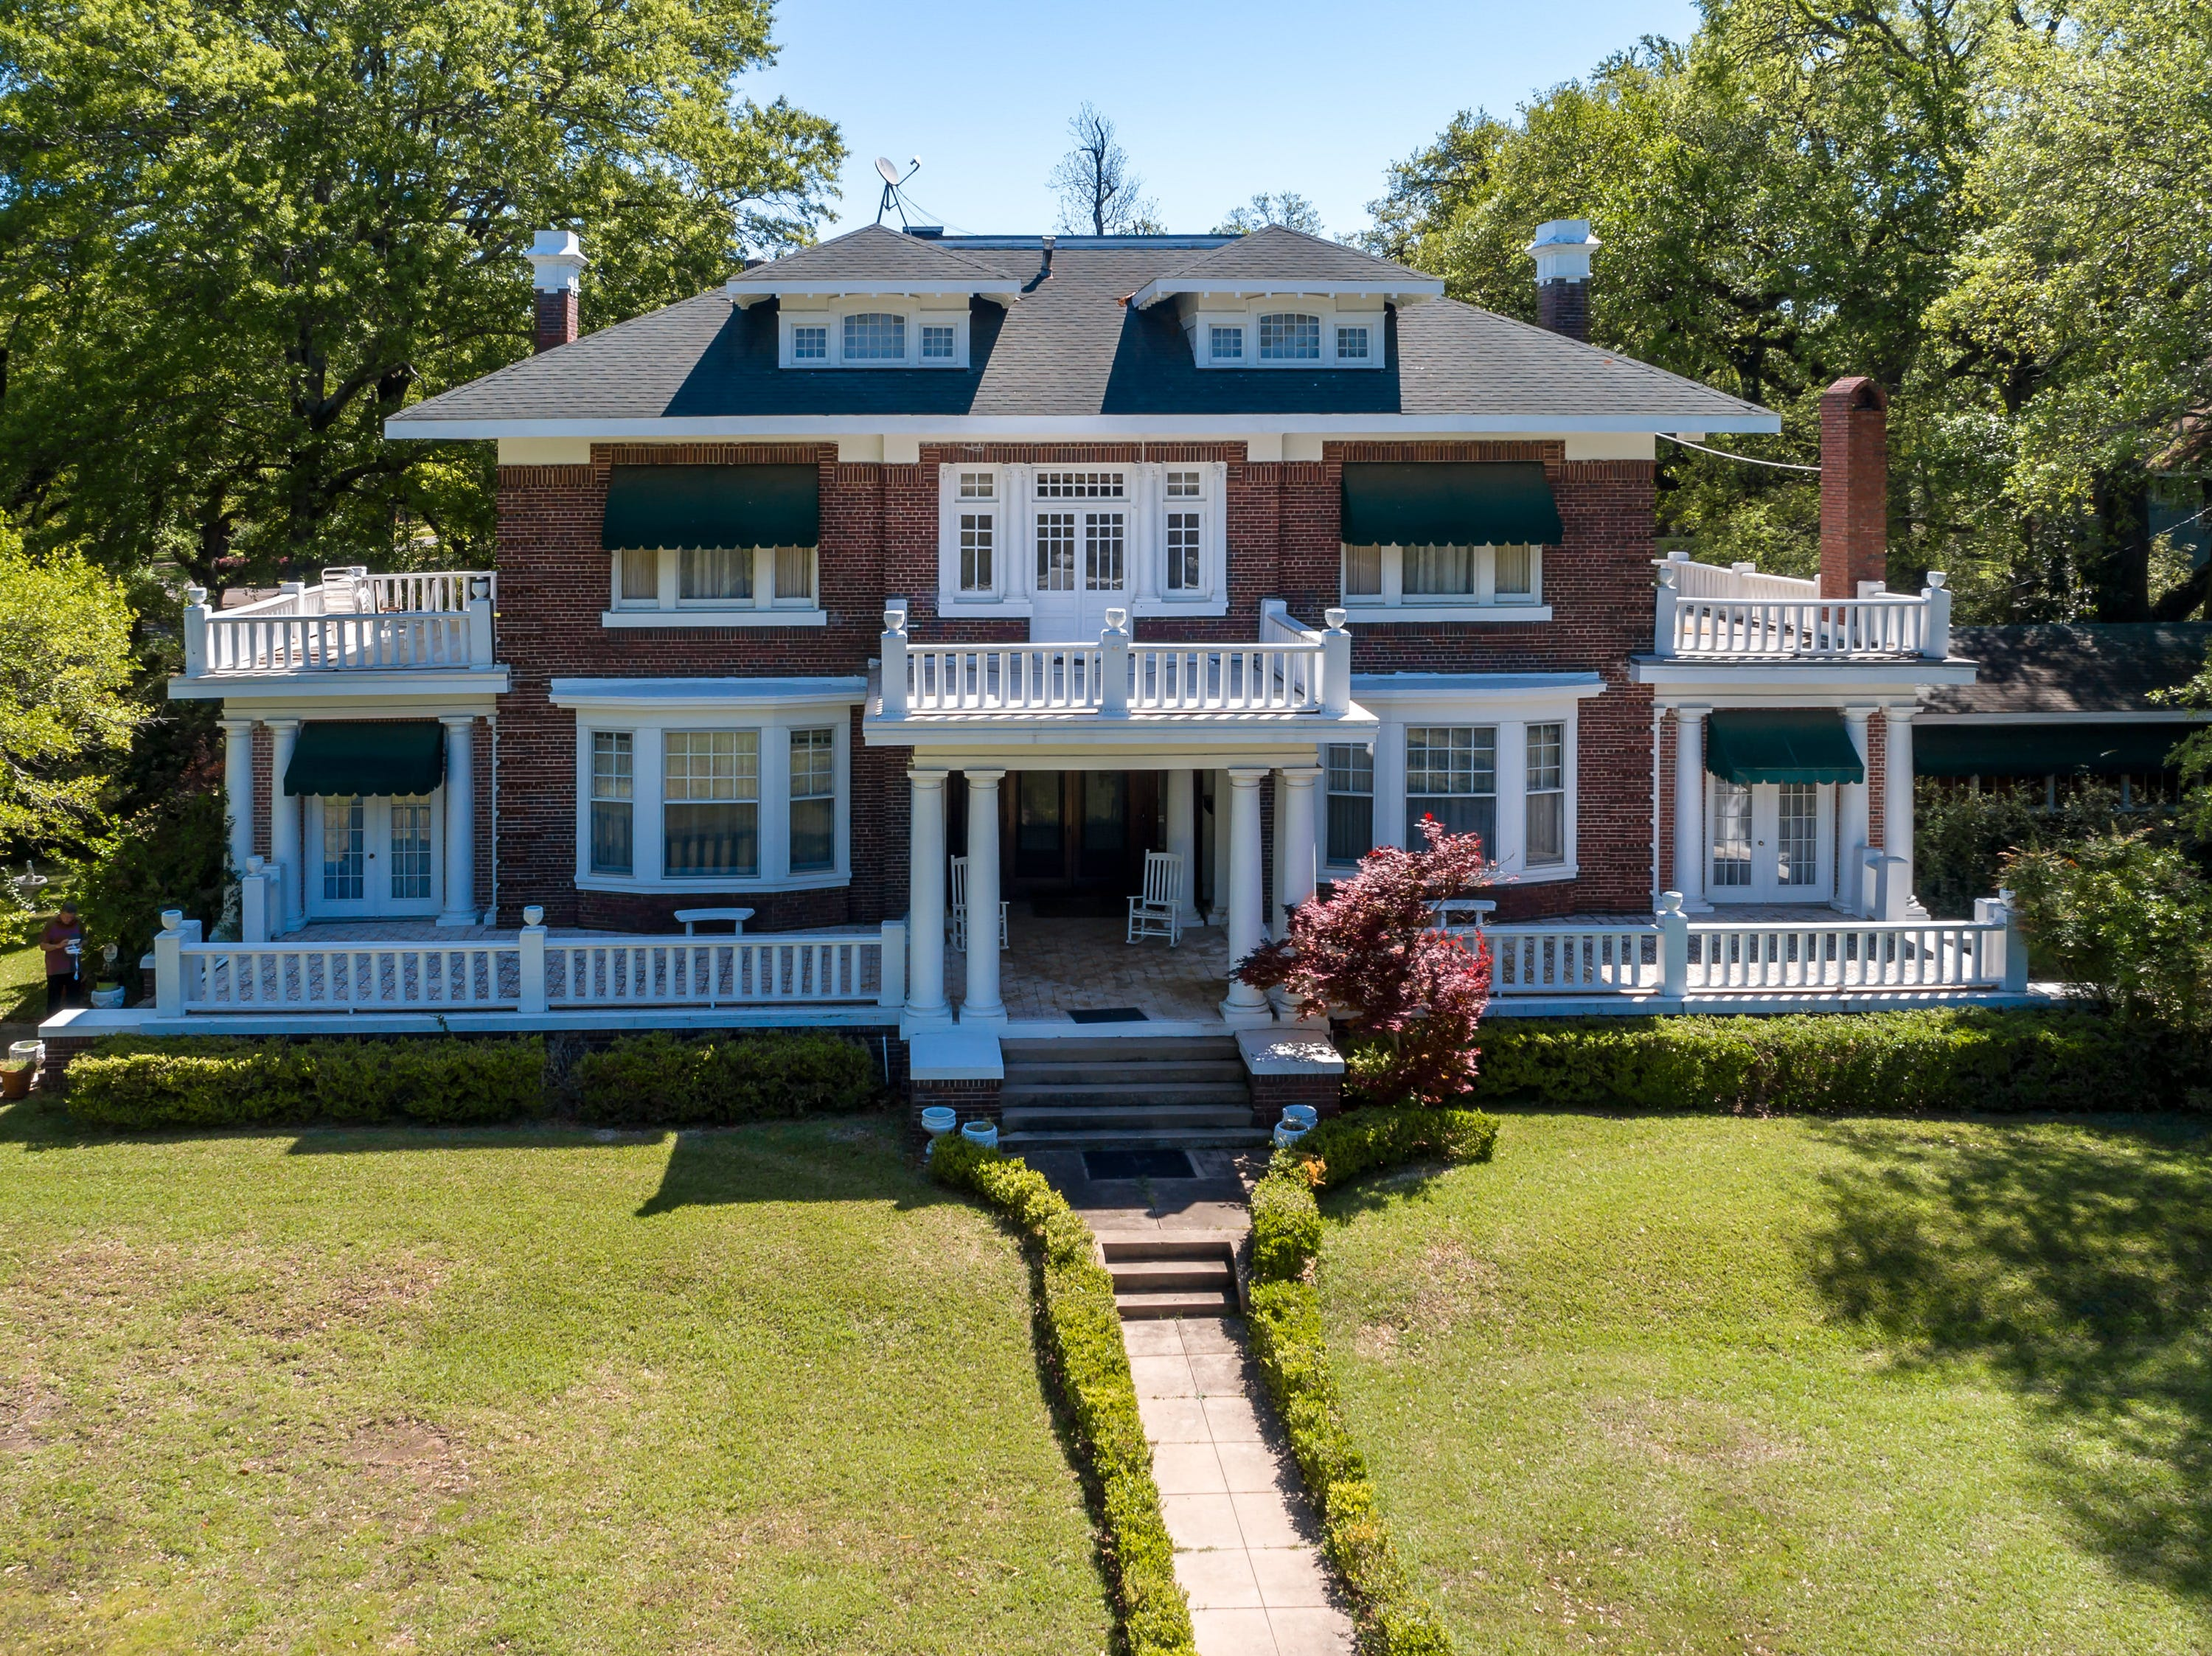 2611 Fairfield Ave., Shreveport  Price: $799,000  Details: 5 bedrooms, 3.5 bathrooms, 6,543 square feet  Special features: Masterpiece historic 1910 property with lush grounds, stunning woodworking and attention to detail,  koi pond is a hidden jewel.  Contact: Karen Baker, 469-1331